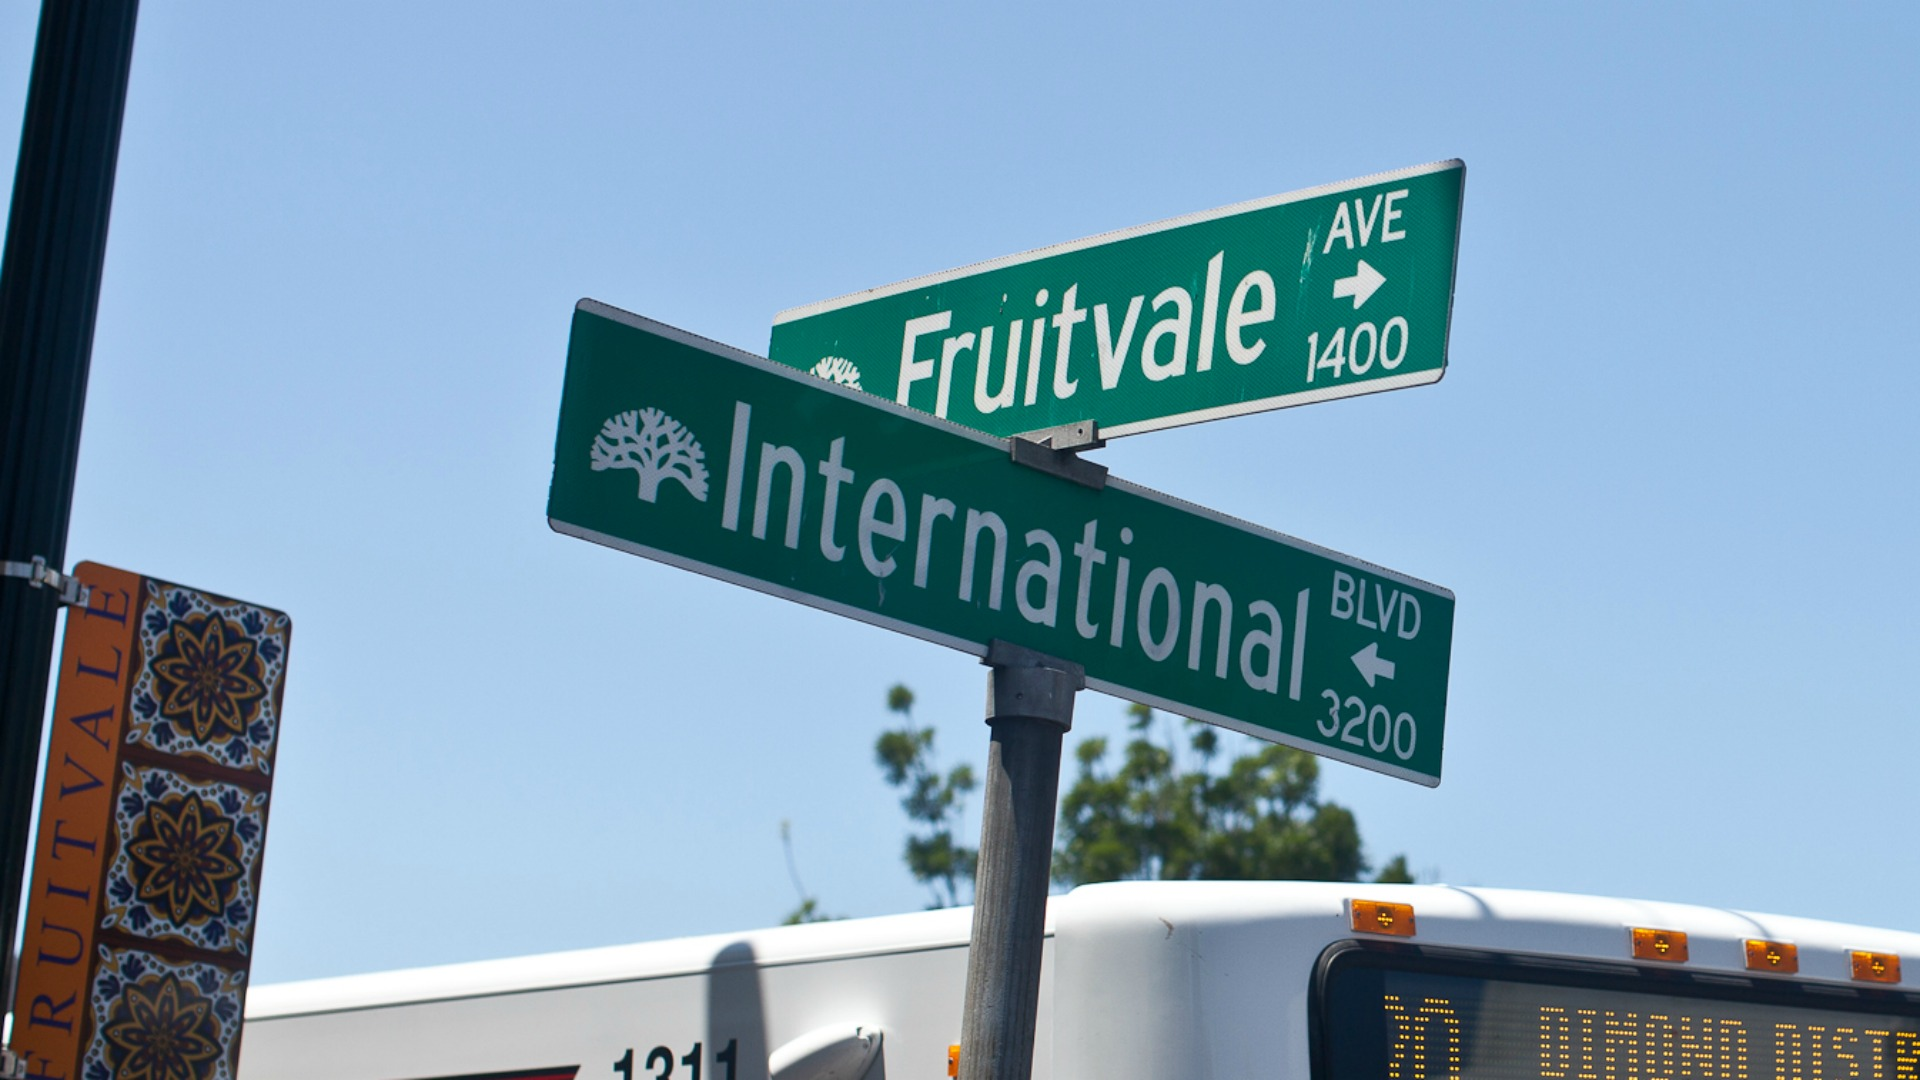 Recovering from Redlining in Oakland's Fruitvale. Has The Community Reinvestment Act Helped?